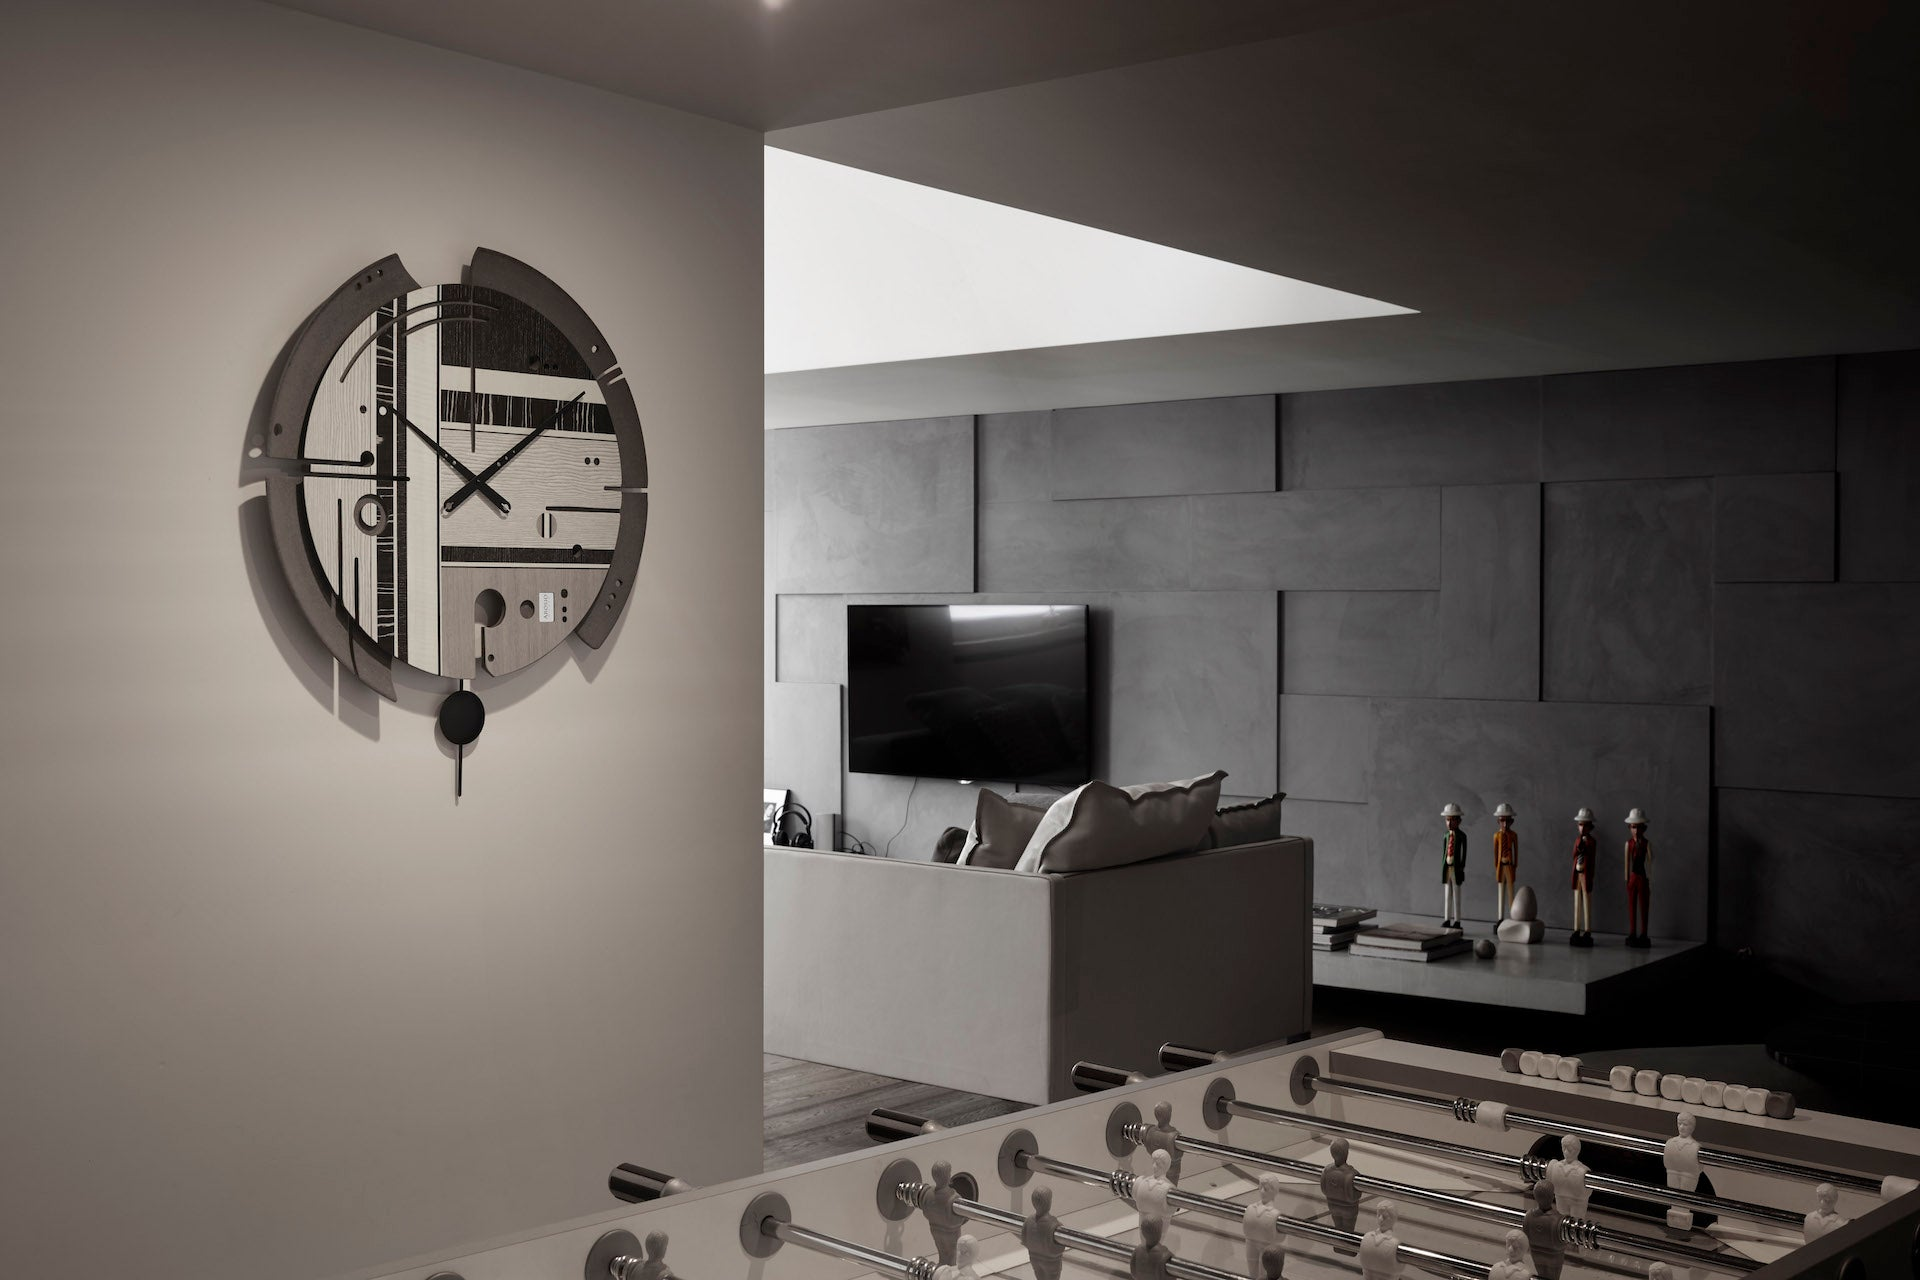 Samada Tech - Wood Wall Clock - Arosio Milano - Ambient